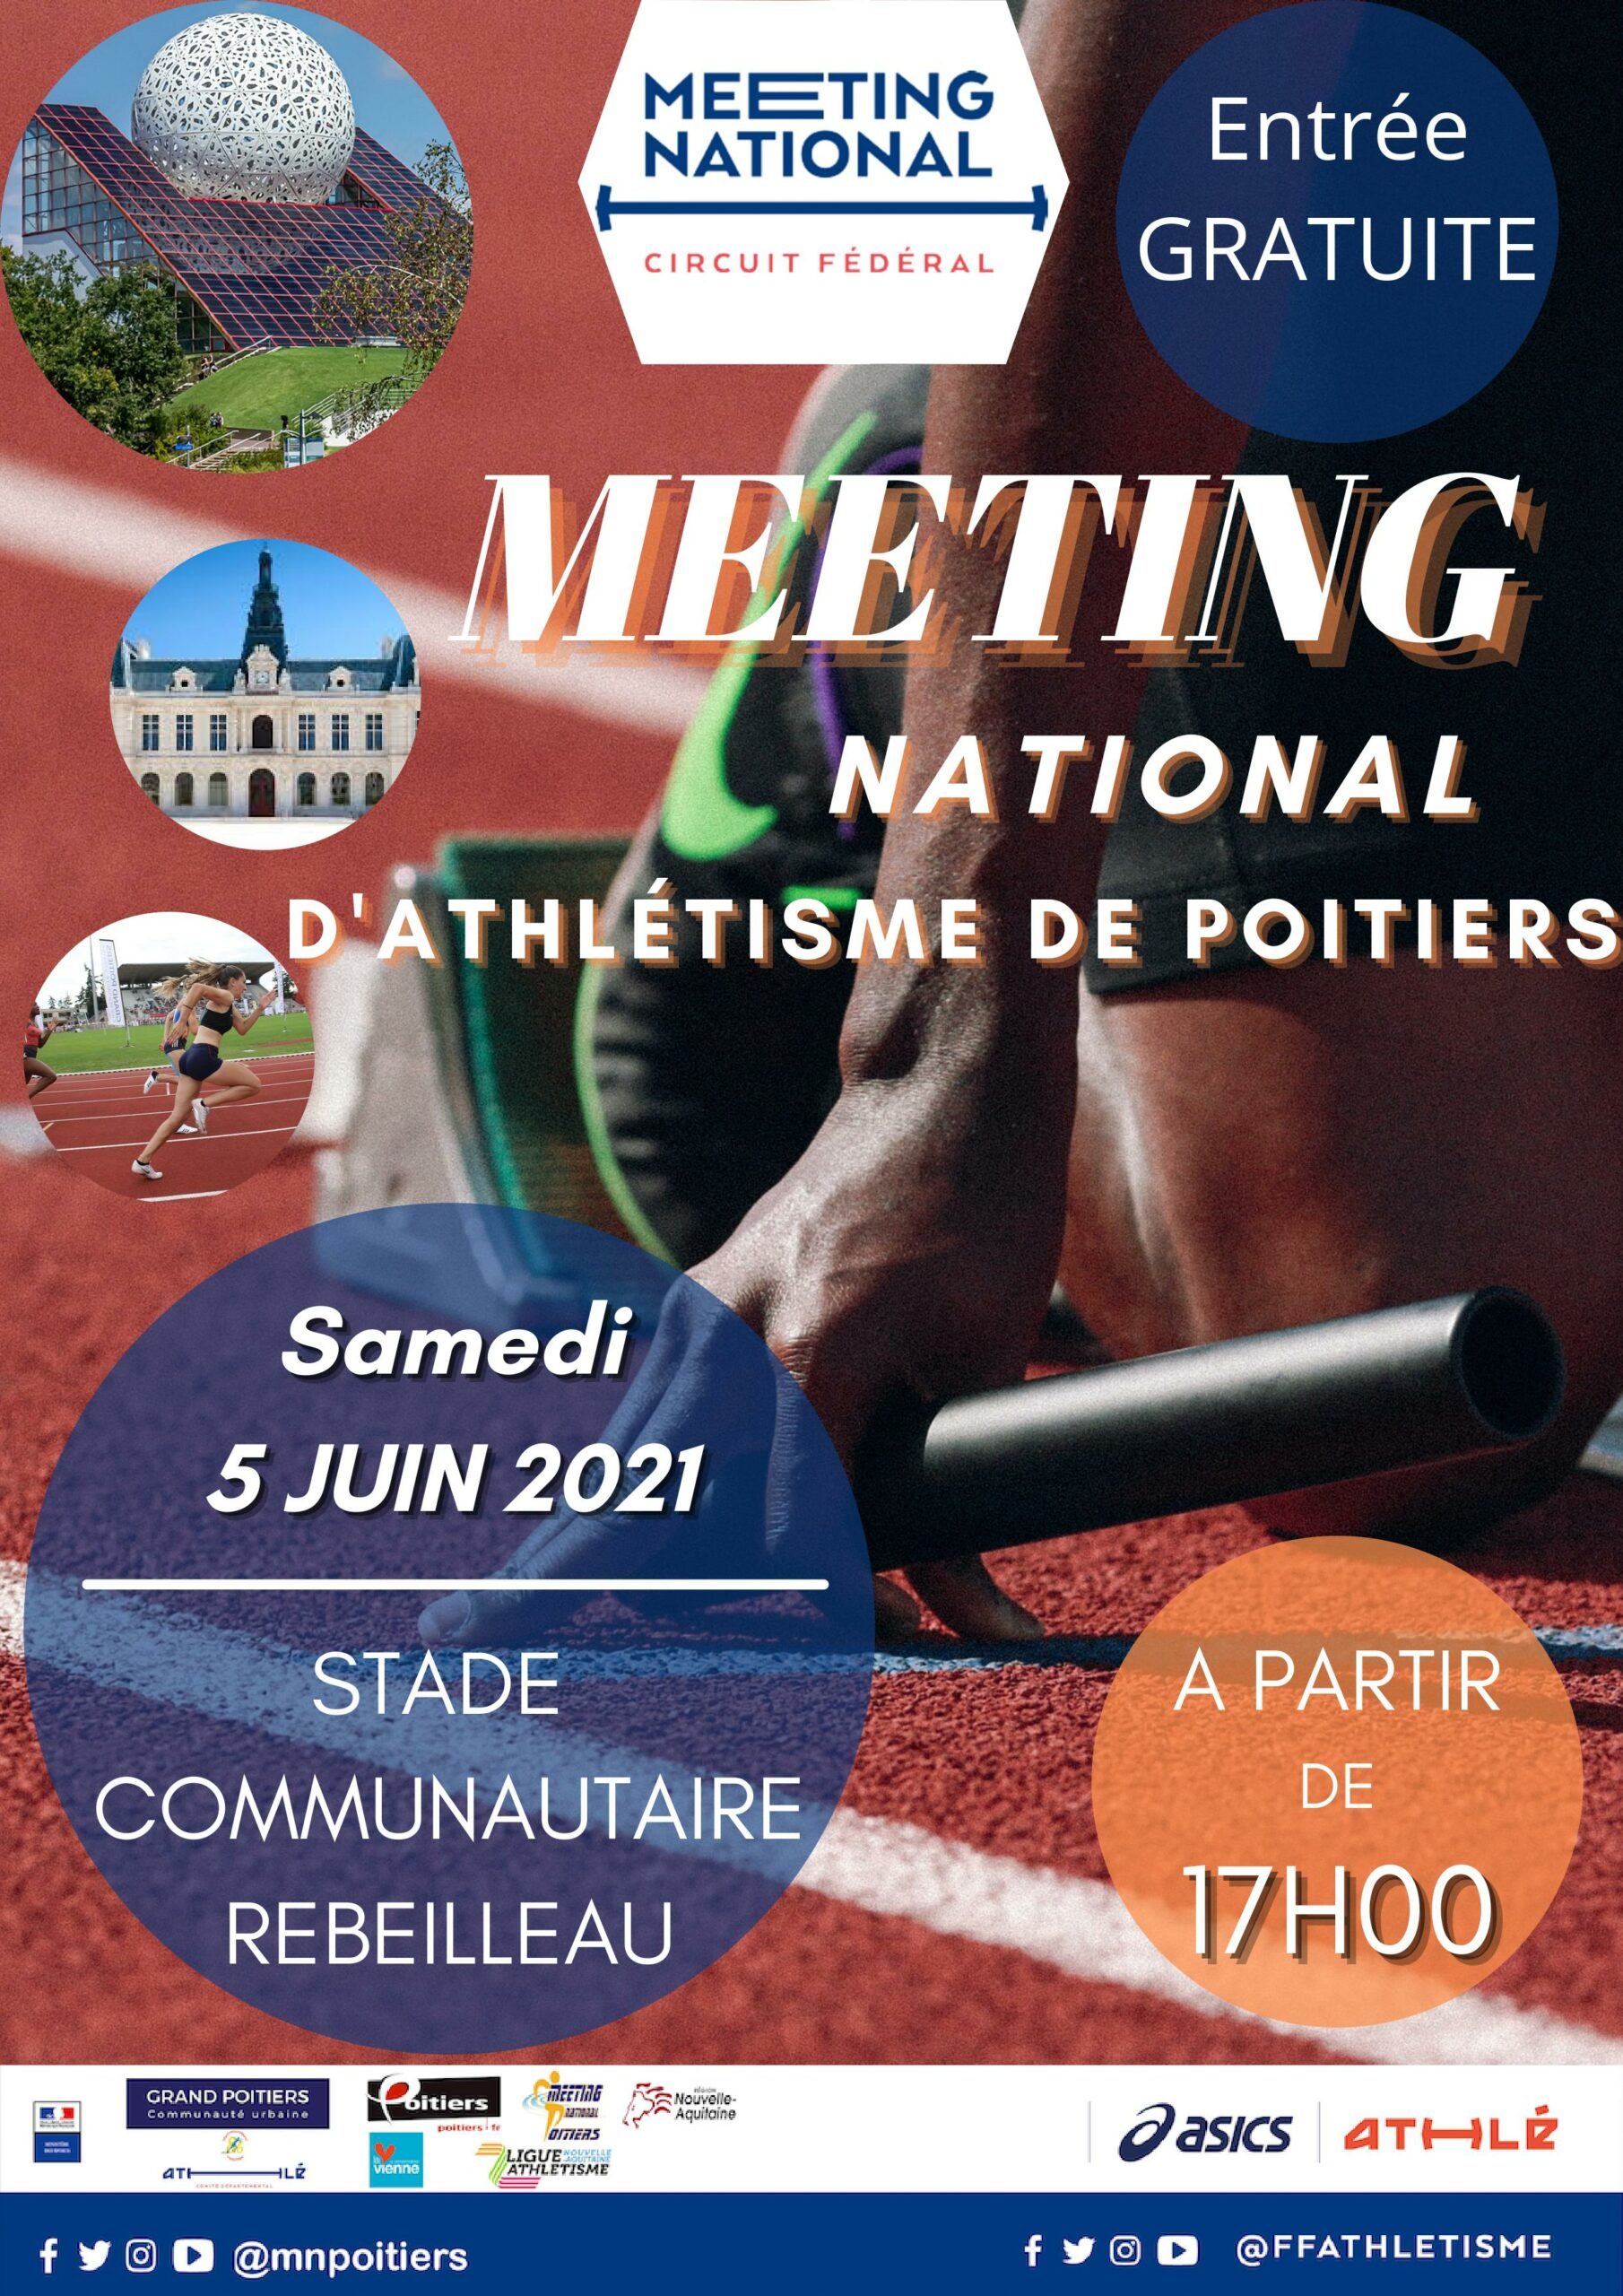 Meeting National d'Athlétisme de Poitiers 2021